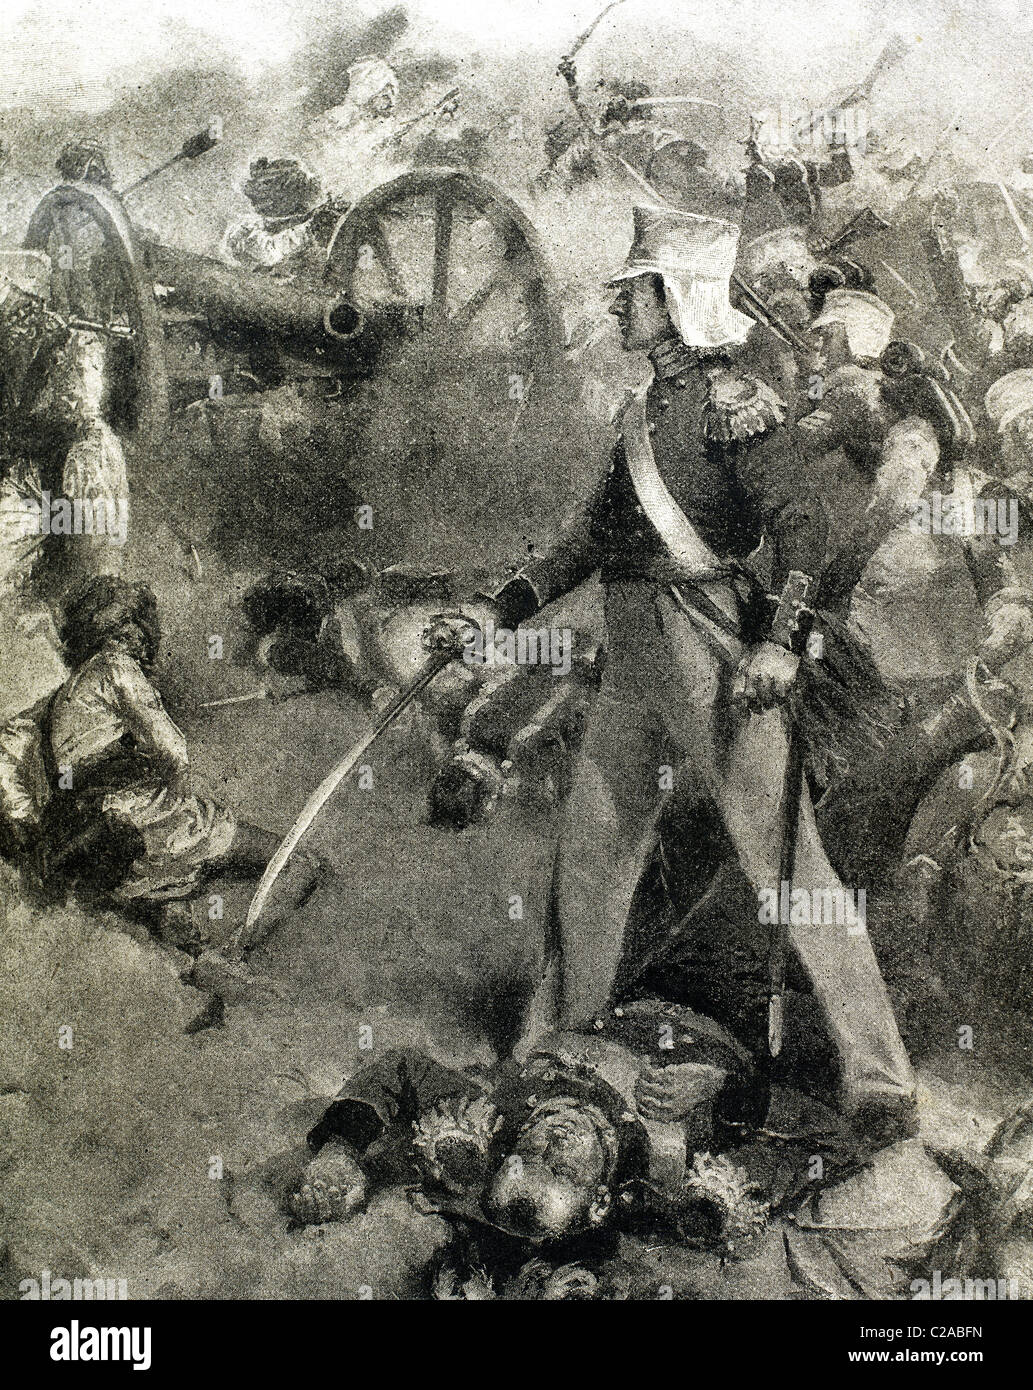 The Second Anglo-Sikh War. It took place in 1848 and 1849, between the Sikh Empire and the British East India Company. - Stock Image